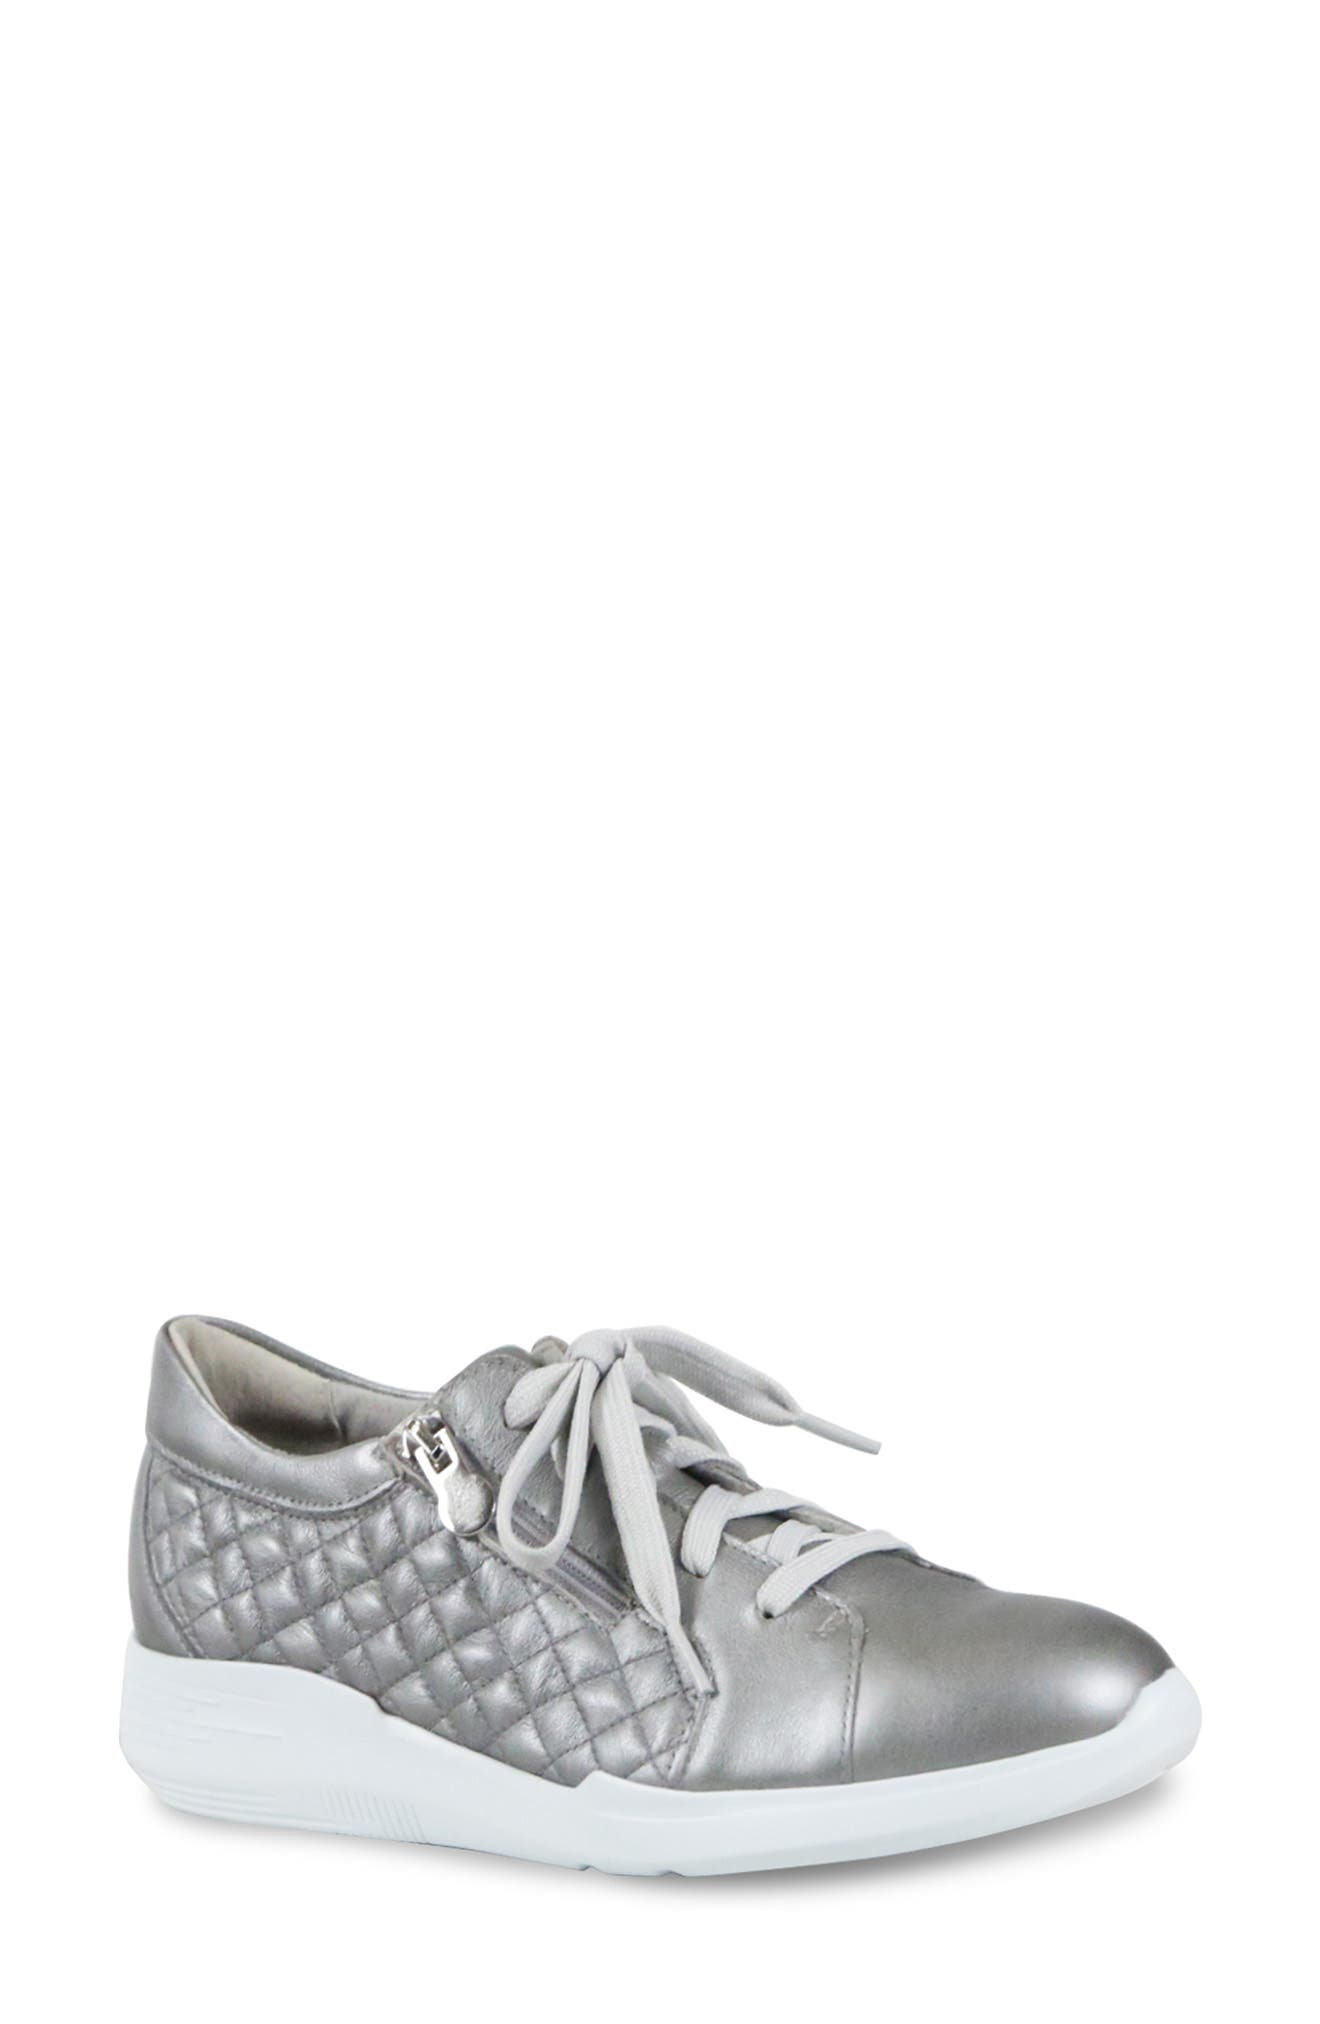 Women's Munro Shoes New Arrivals: Boots